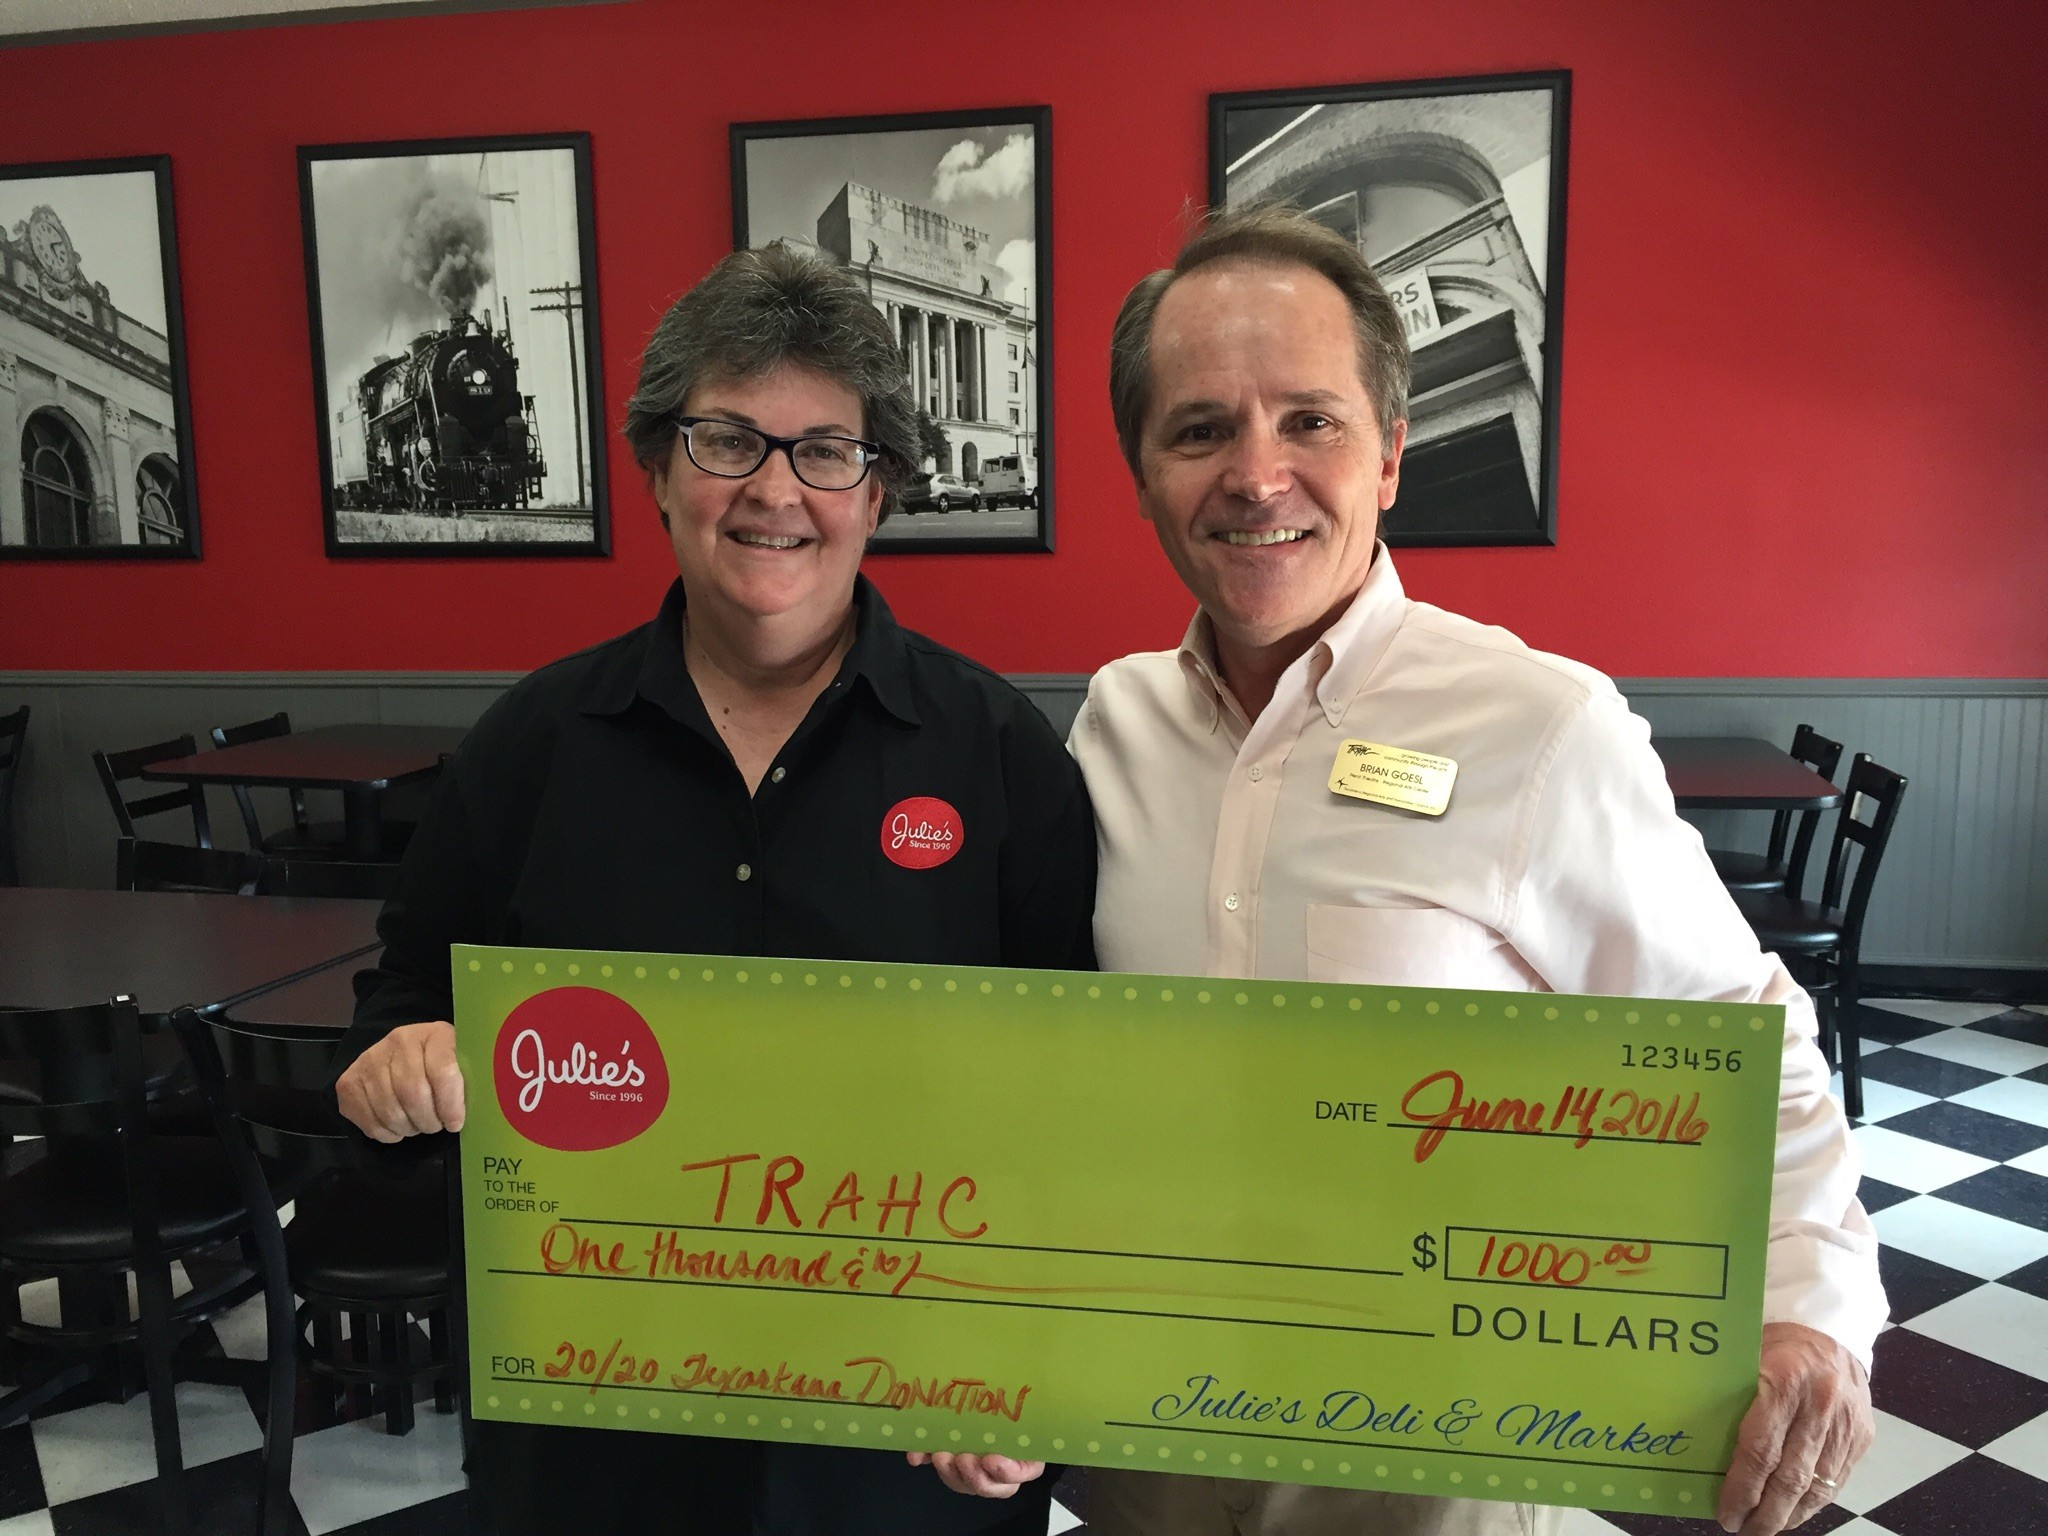 9395cd4693 TRAHC is Gifted $1,000 from Julie's Deli in 20th Anniversary Celebration|News  & Releases | TRAHC Texarkana Regional Arts & Humanities Council